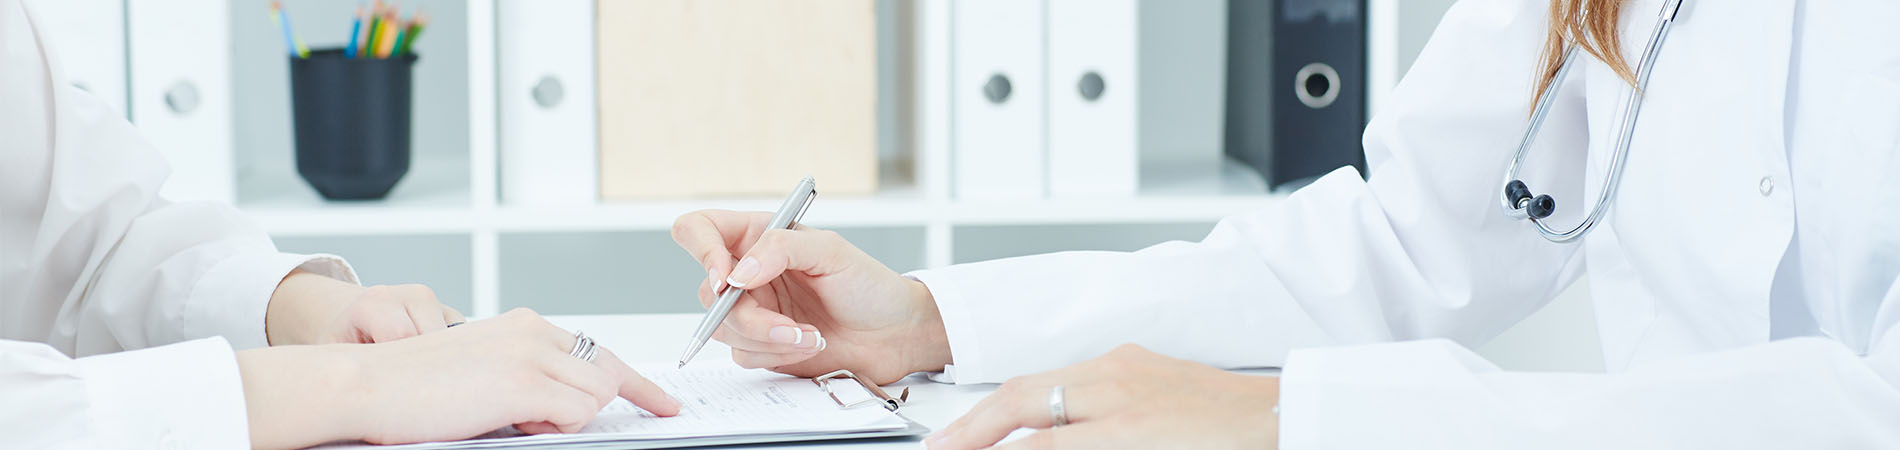 A doctor signing something at a medical practice